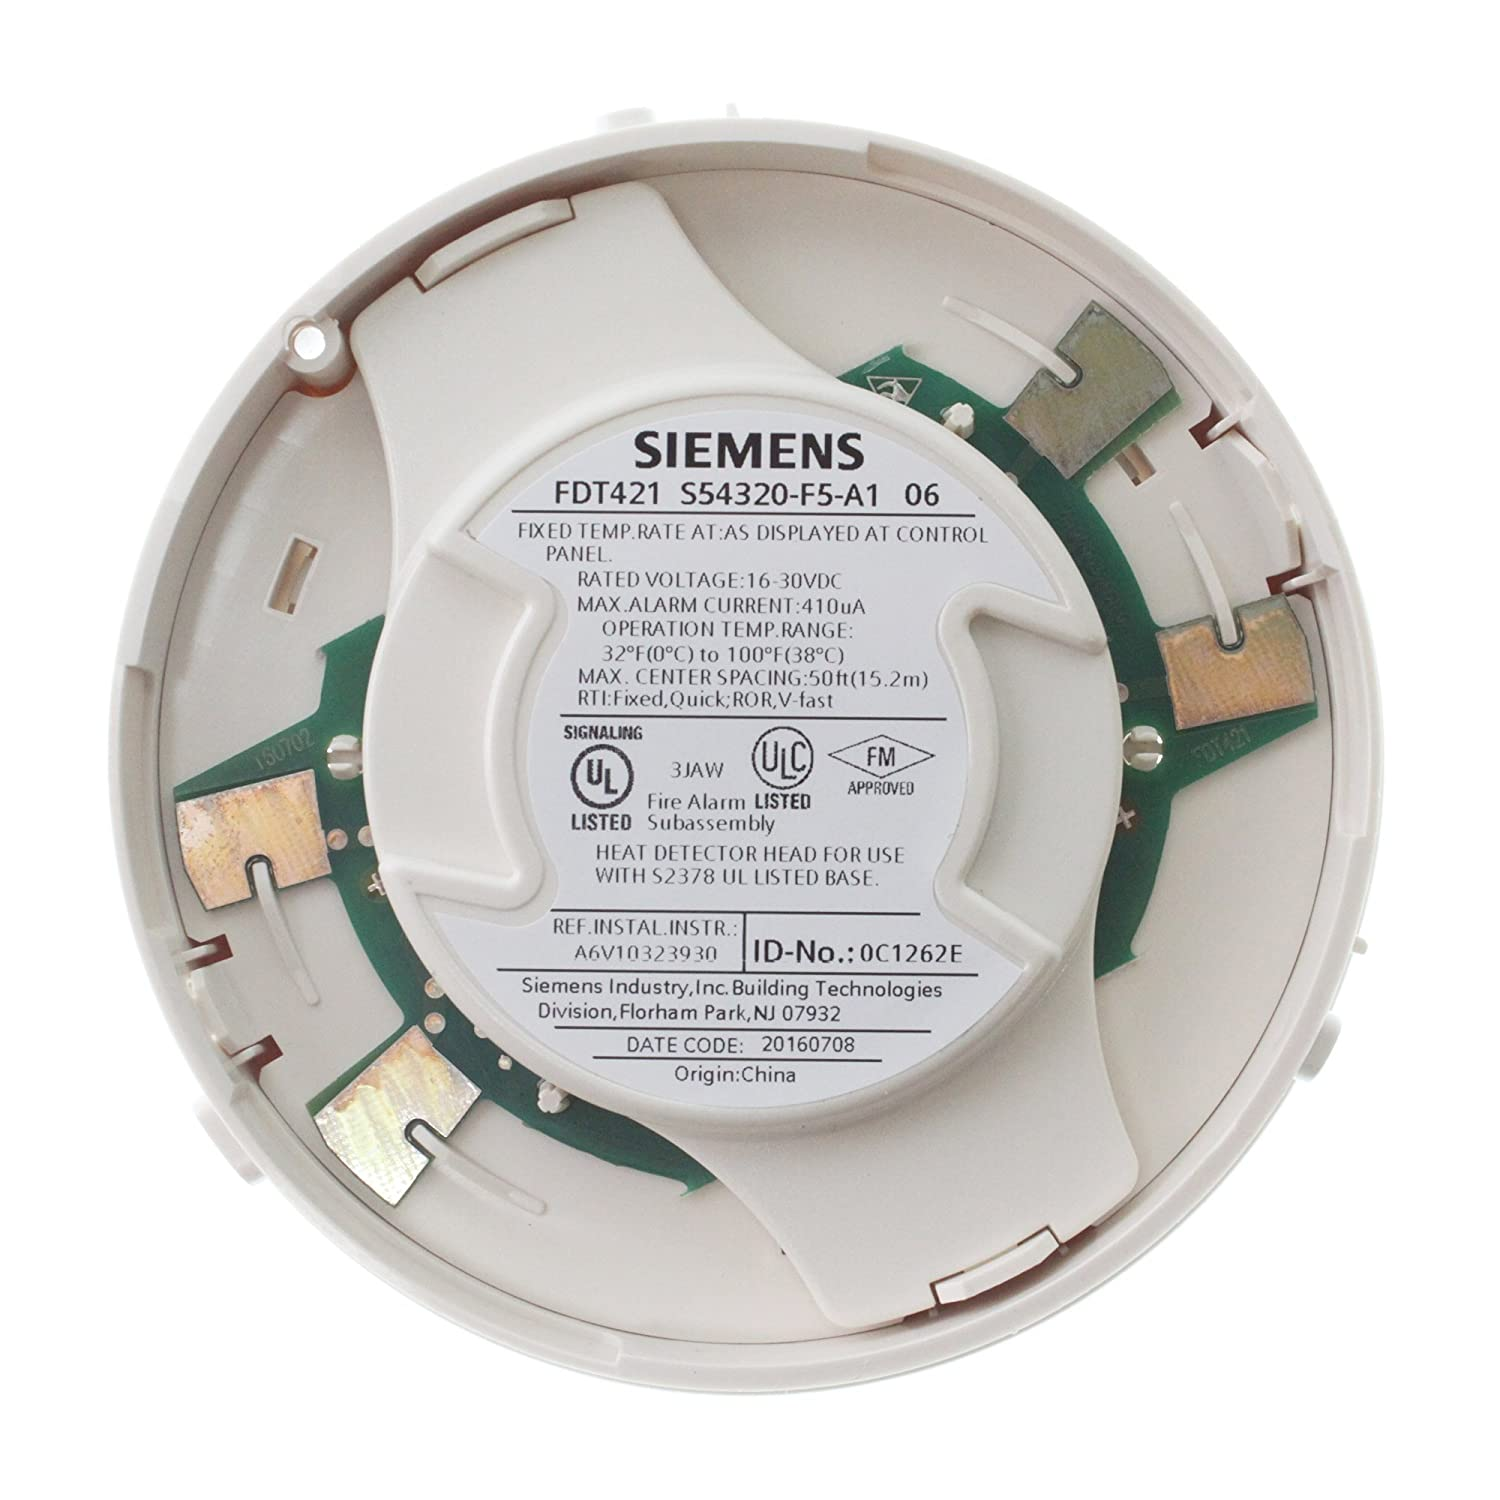 Amazon.com: Siemens FDT421 Intelligent Addressable Thermal Heat Detector/Sensor, White: Home Improvement